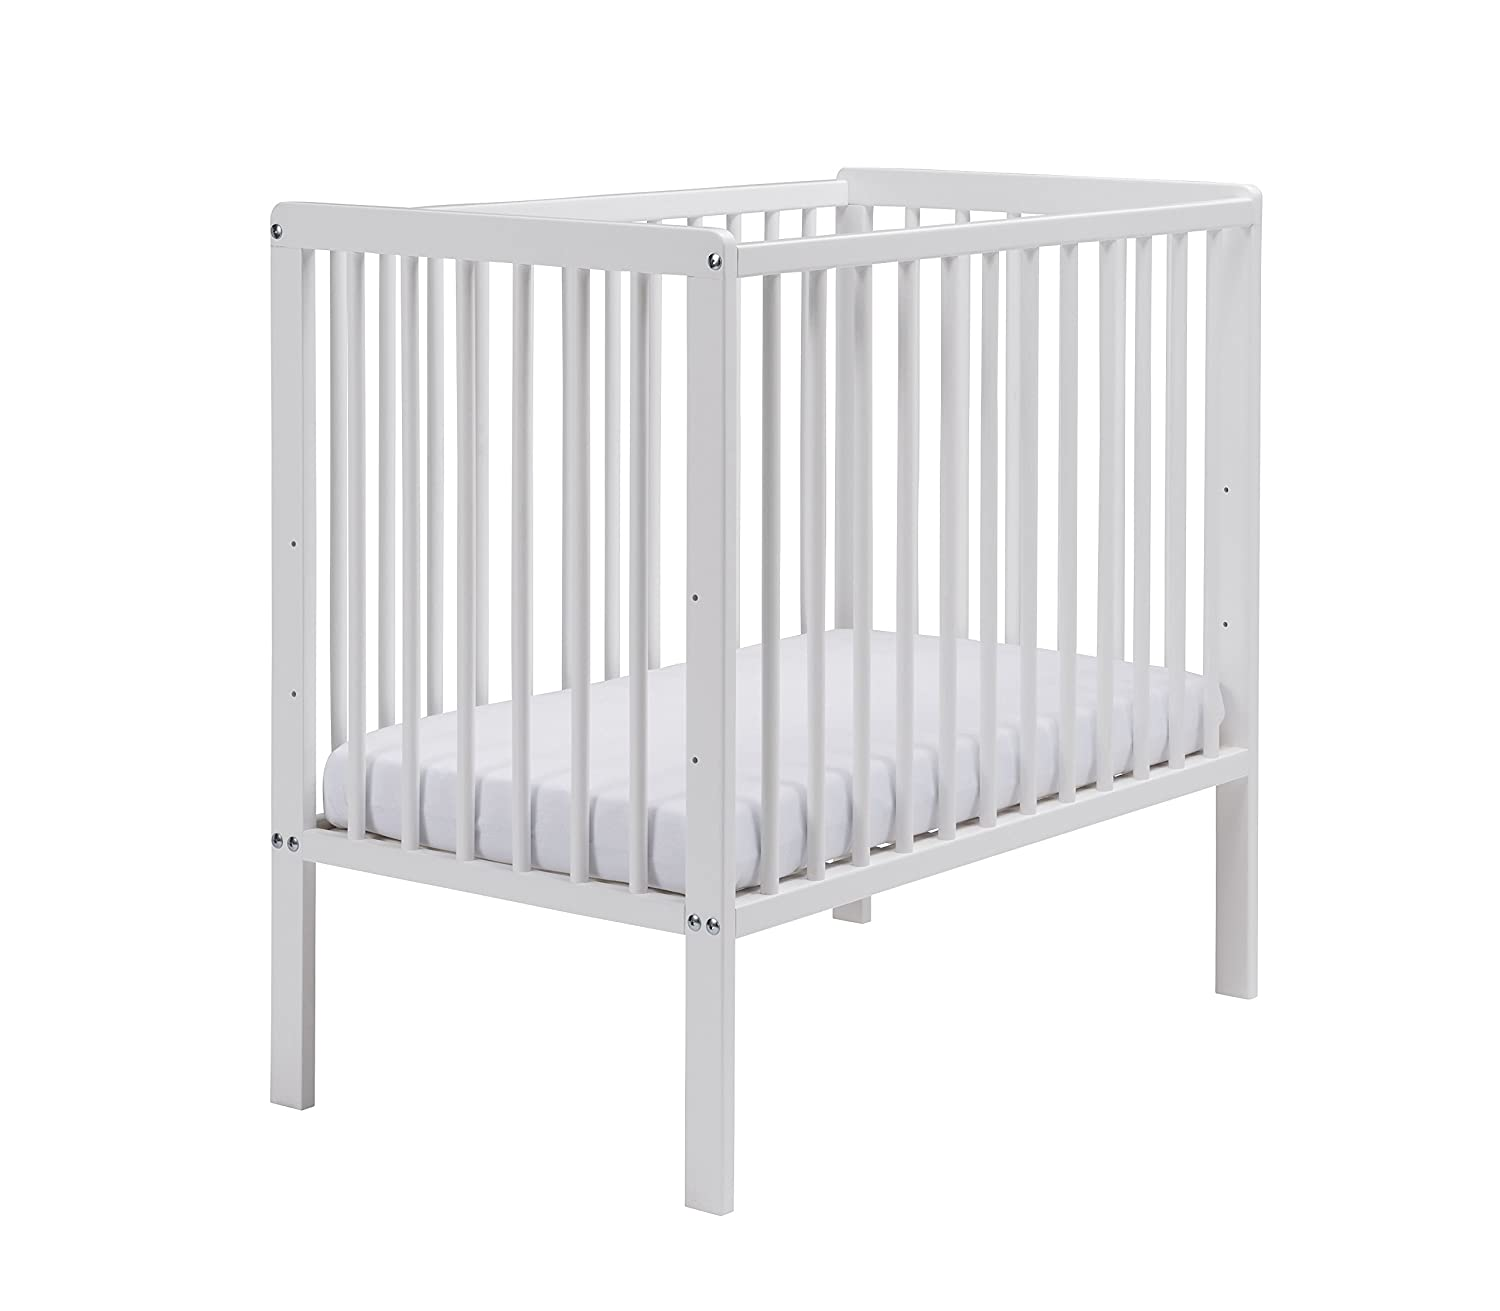 East Coast Nursery Carolina Space Saving Cot with Mattress (White) 7841W